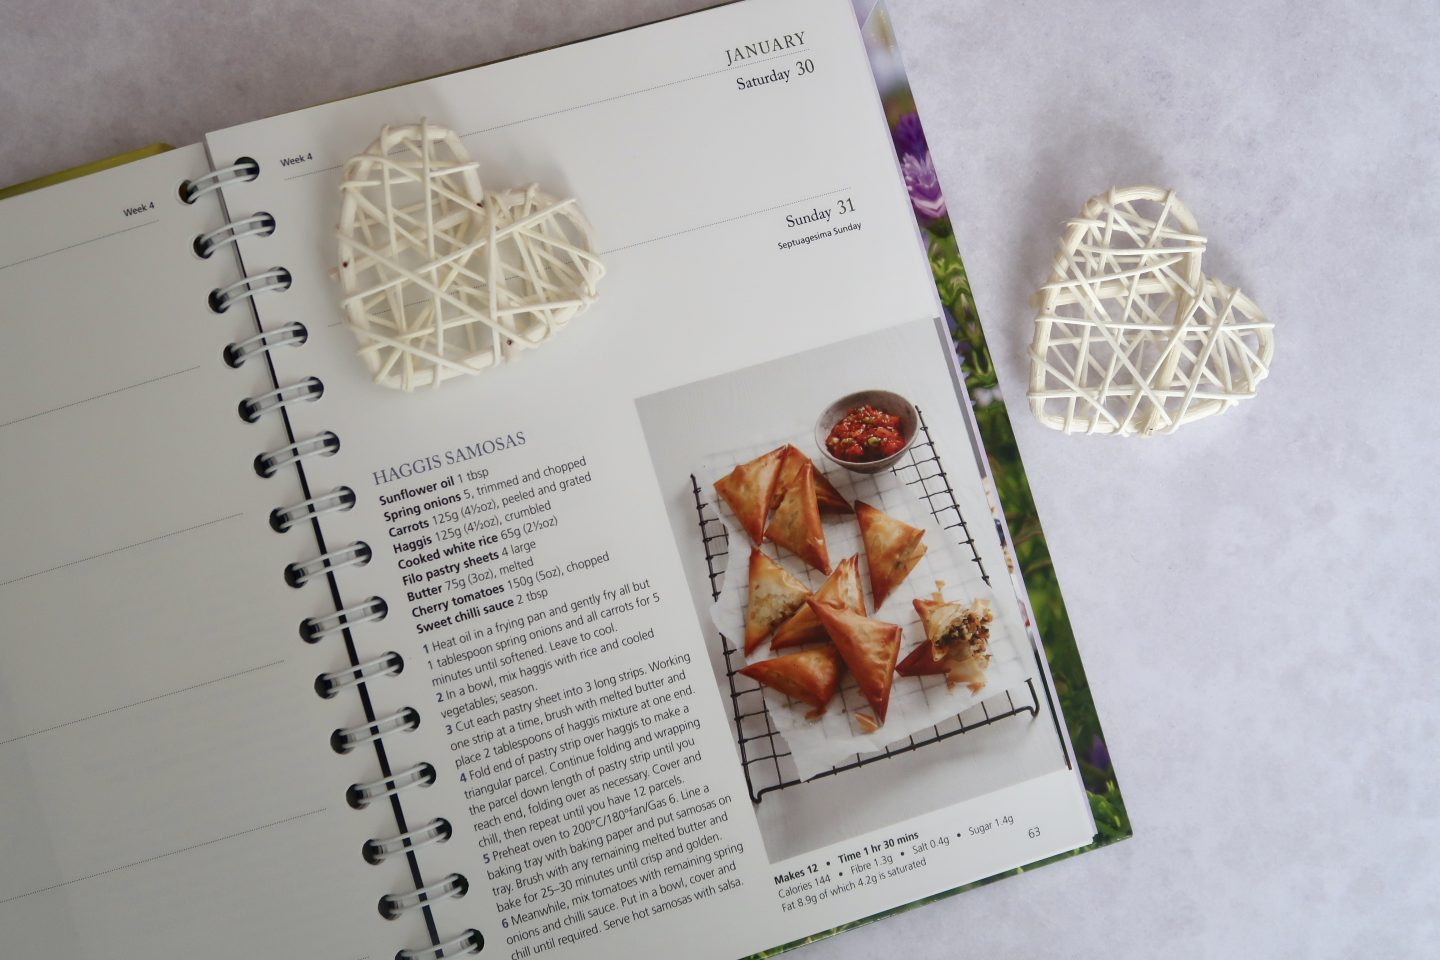 A recipe for Haggis samosa in a page of a diary